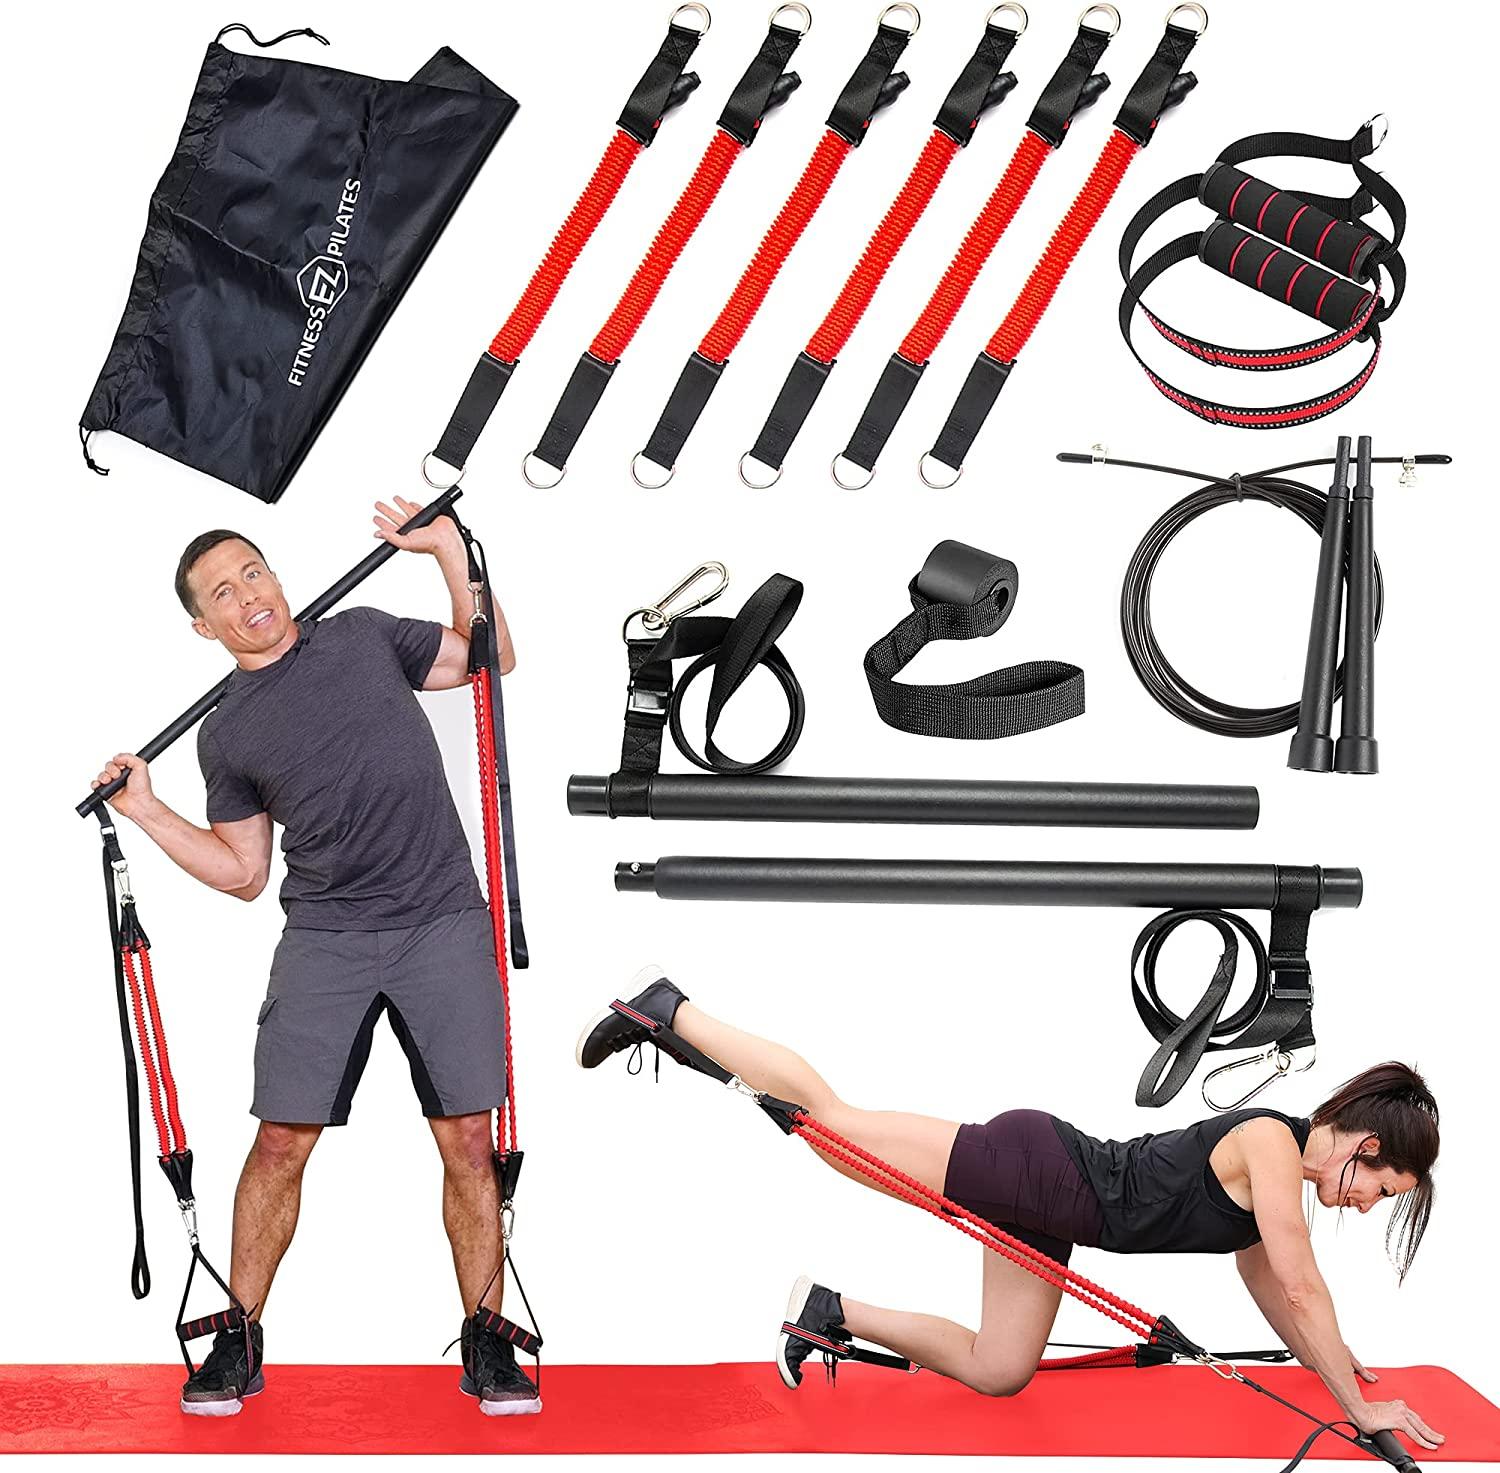 FitnessEZ Pilates Bar Kit with Resistance Bands - Portable Home Gym Workout Set - 6 Exercise Bands, Pilates Stick, Door Anchor for Toning, Sculpting, Strength Training and Video